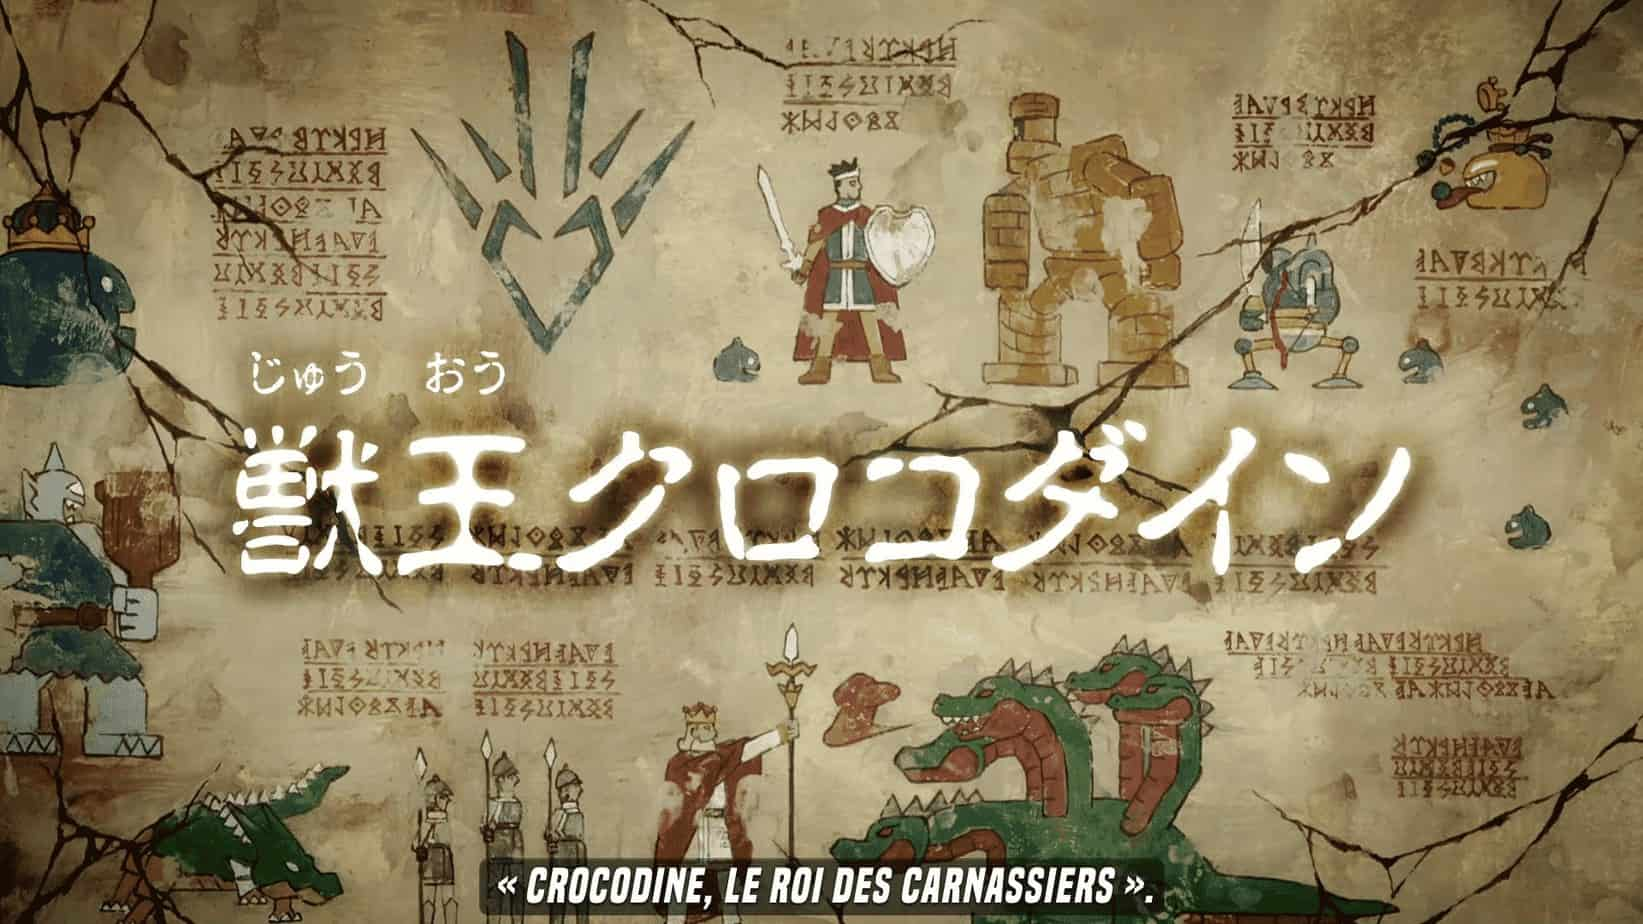 DRAGON QUEST: The Adventure of Daï épisode 6 vostfr – Crocodine le roi des carnassiers